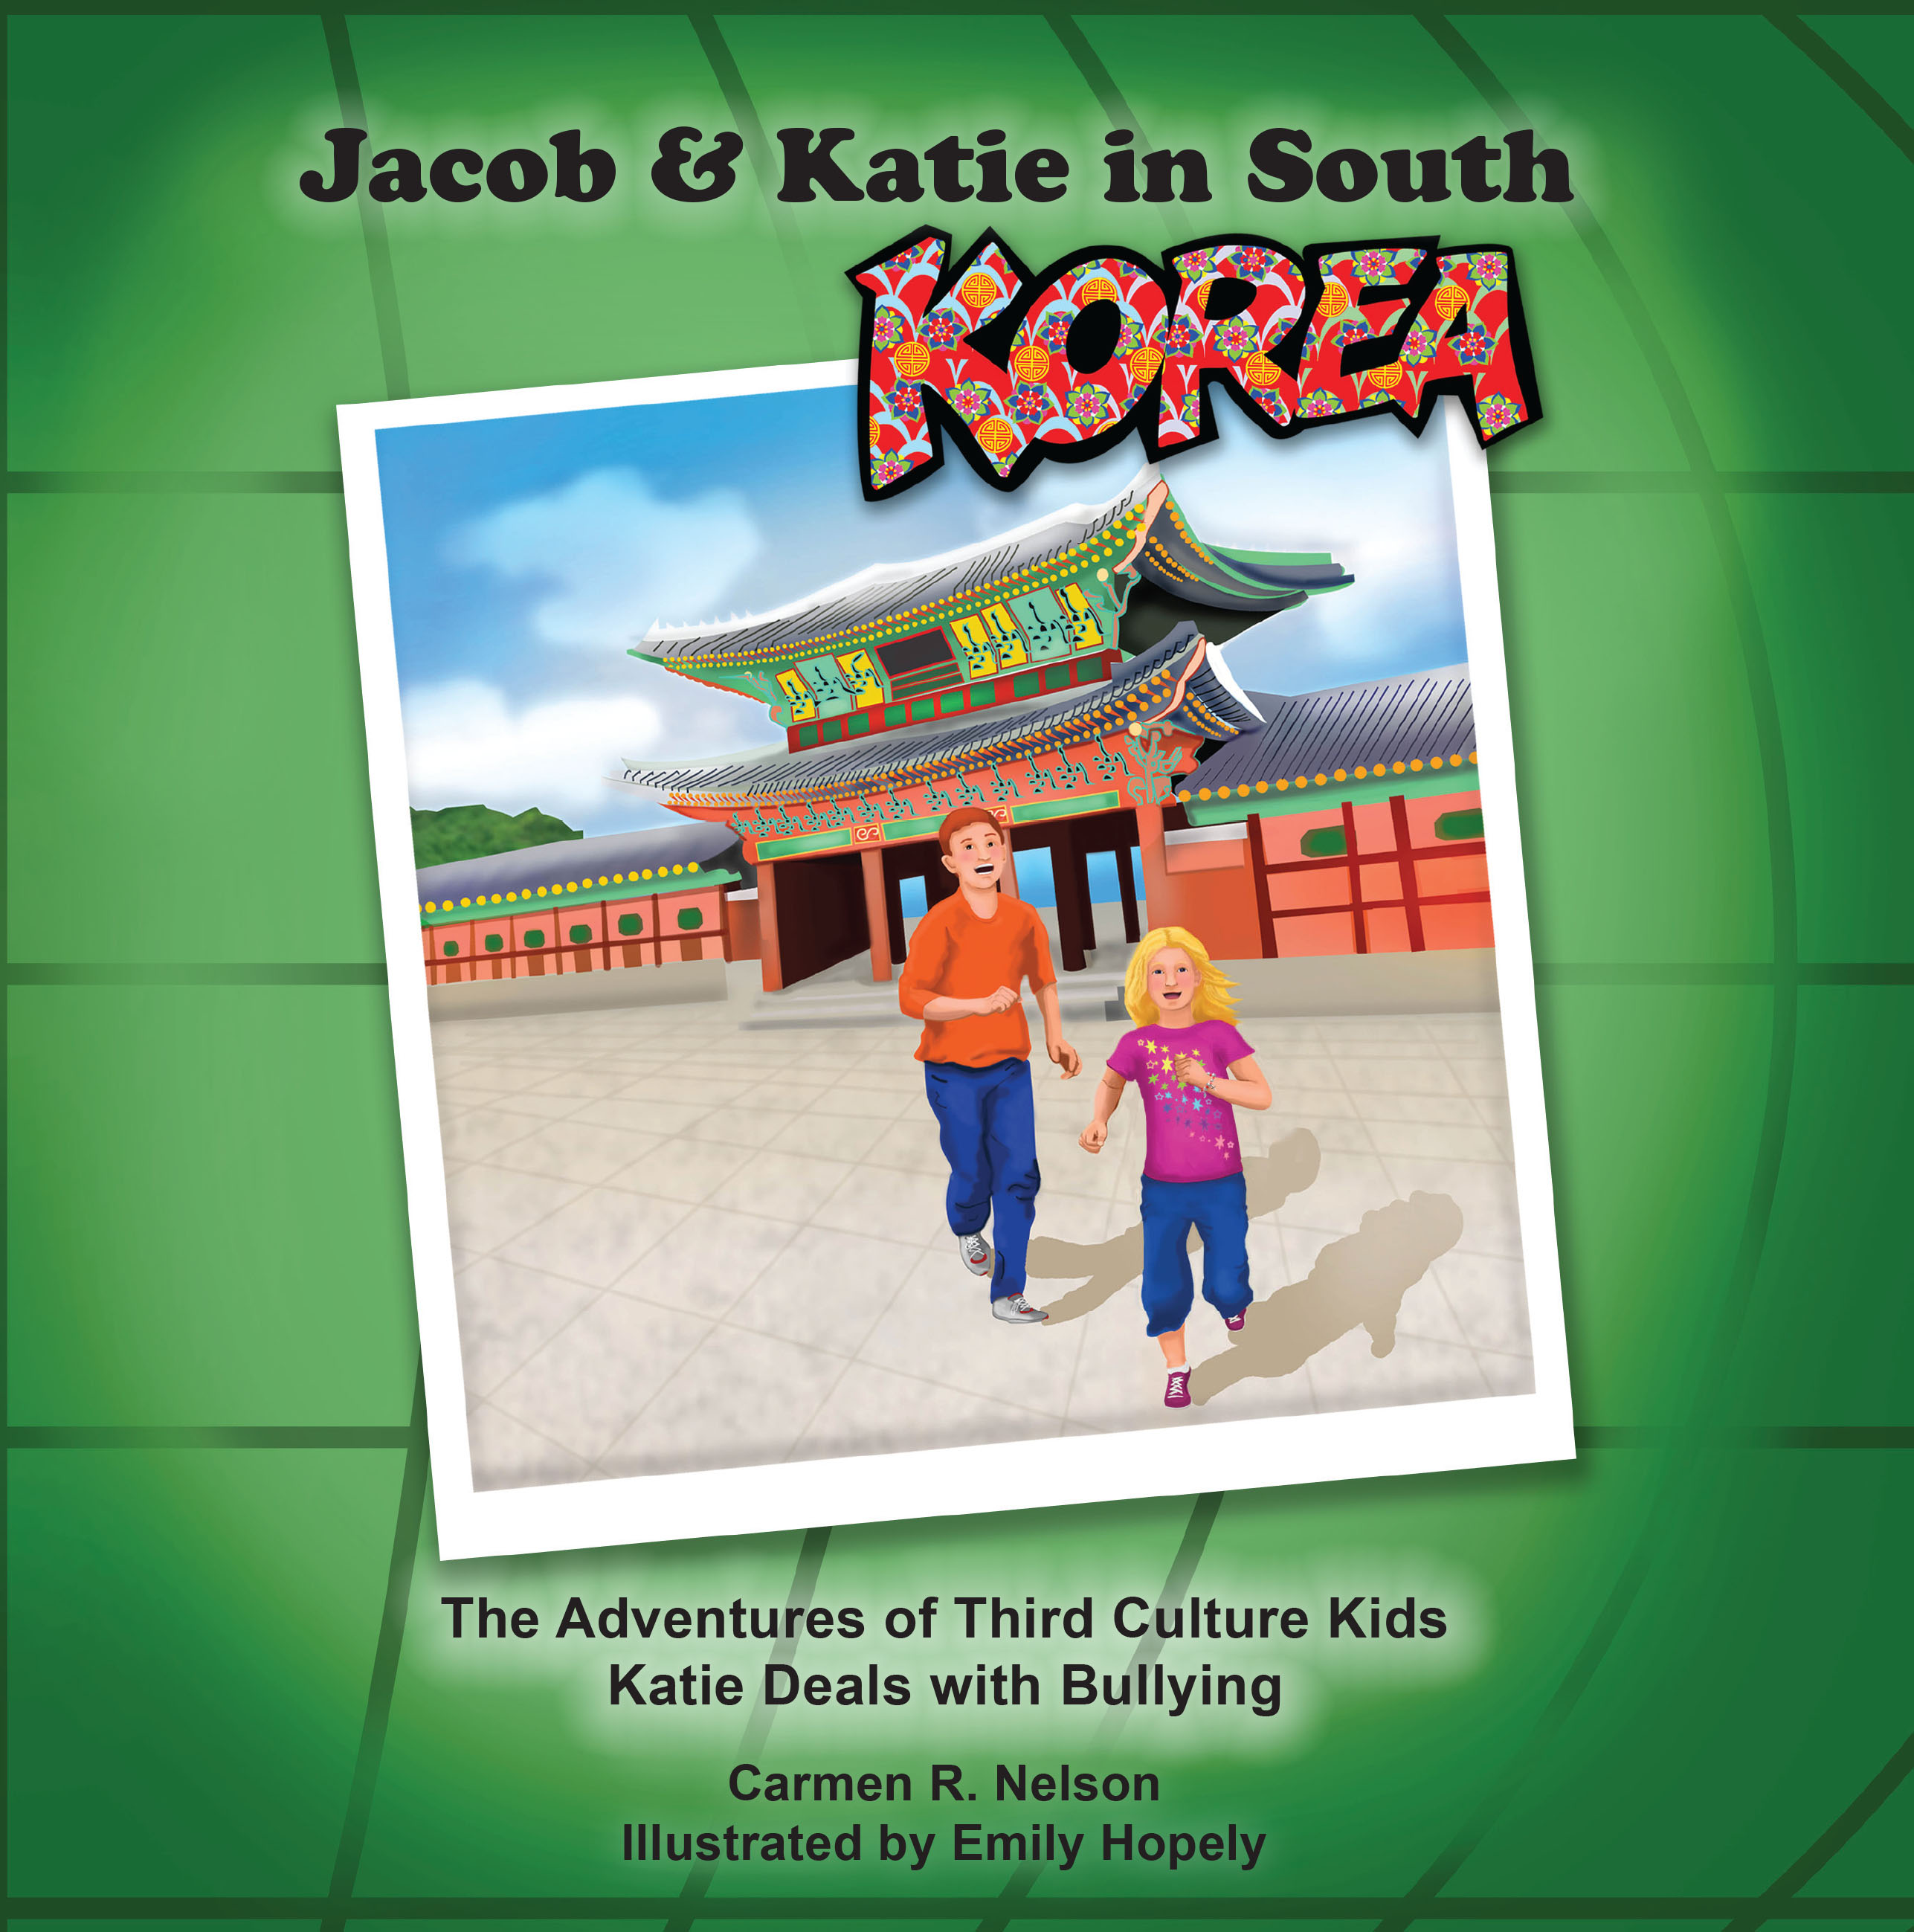 third culture kid college essays The advantages and disadvantages of being a third culture kid pages 3 more essays like this: linda crew, bend it like beckham, third culture kid, children of the.